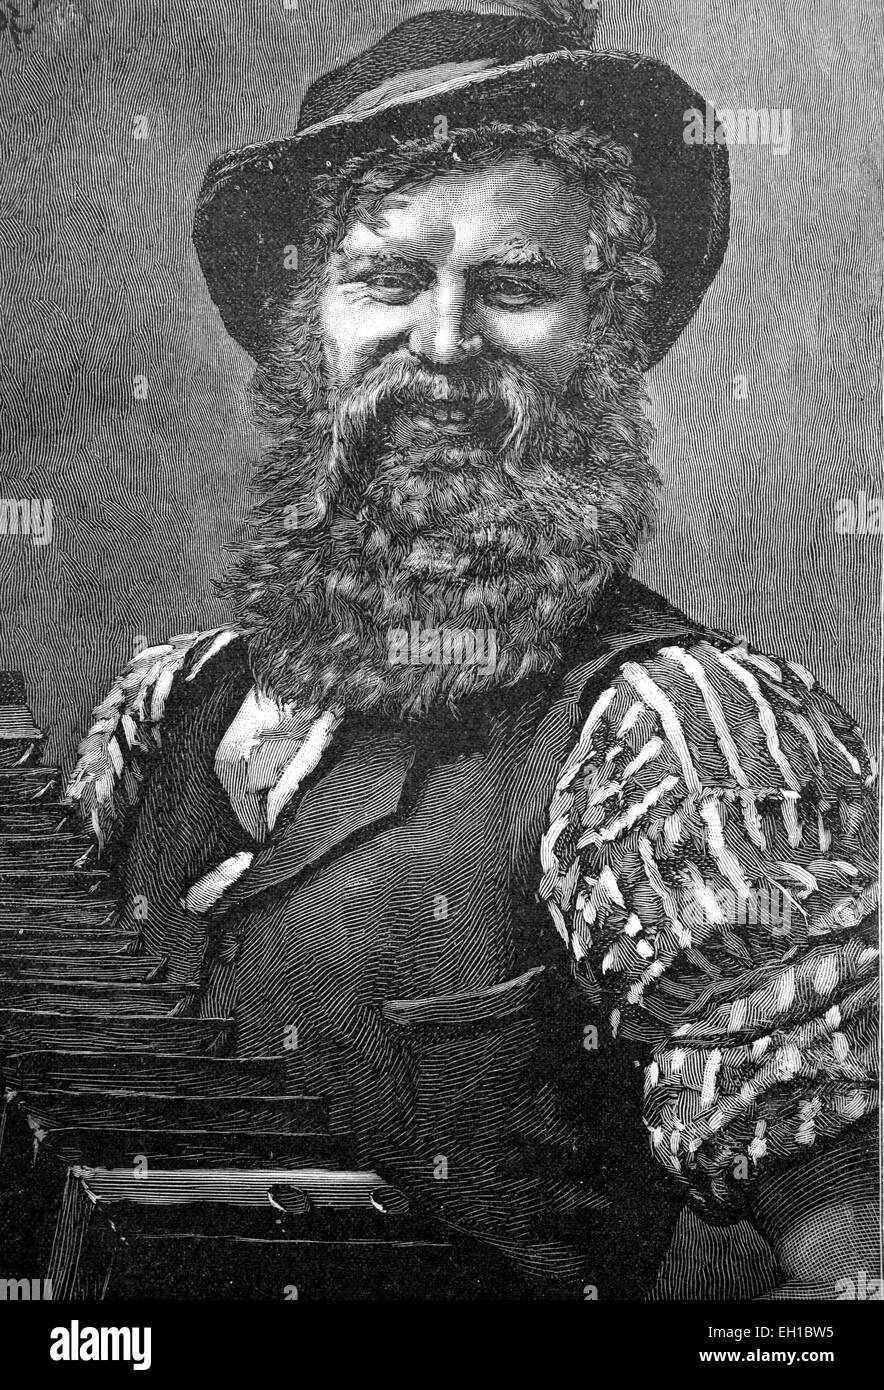 Musician, historical picture, about 1893 - Stock Image